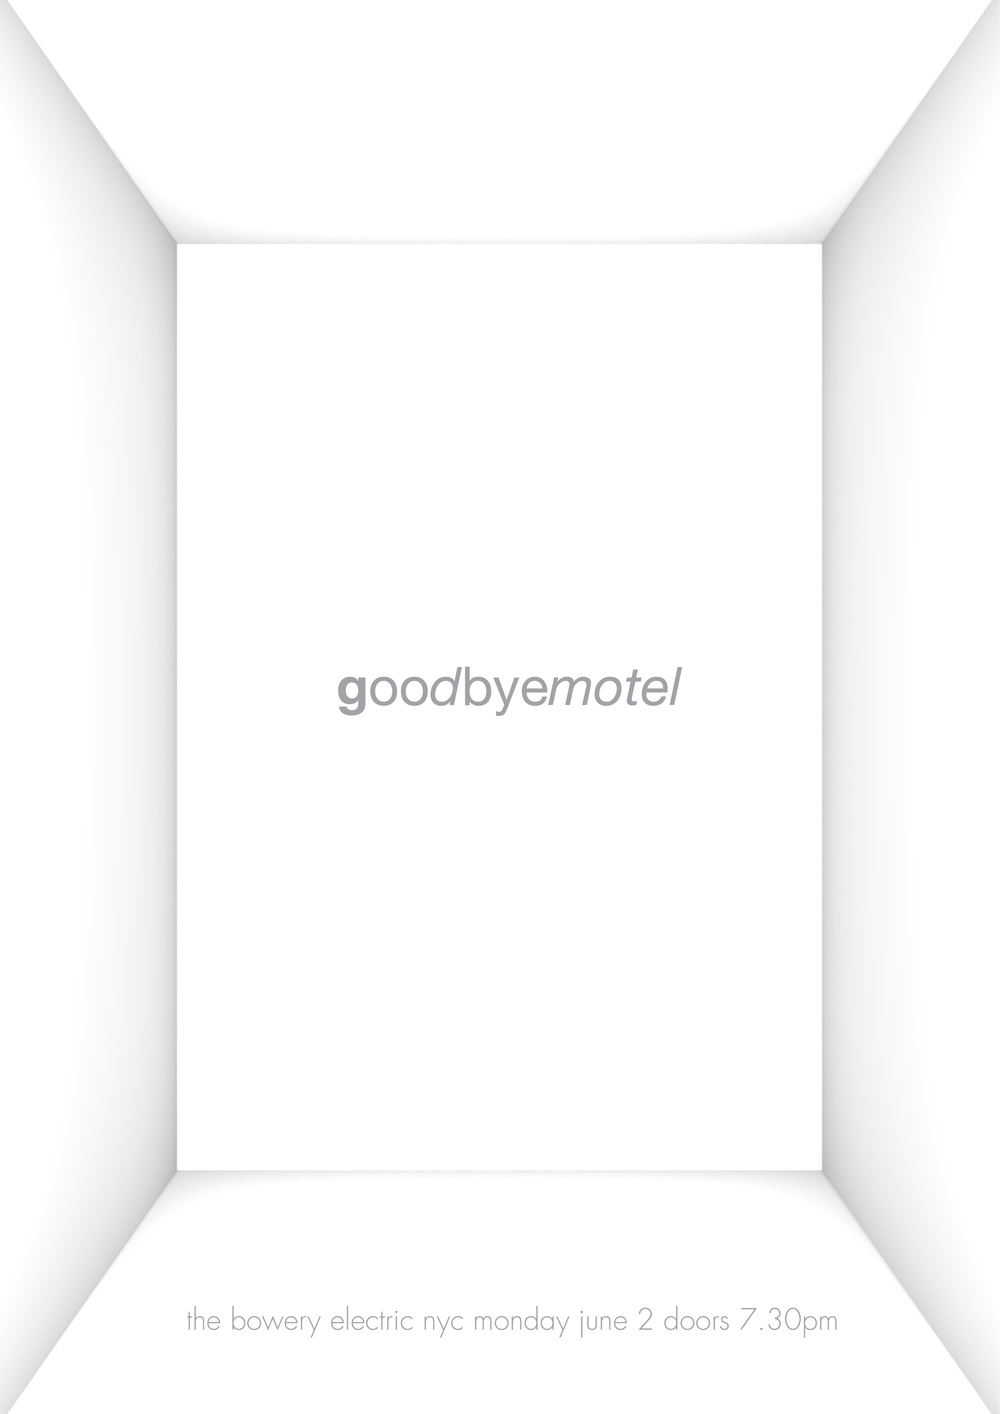 goodbyemotel-bowery-electric-2nd-june-2014